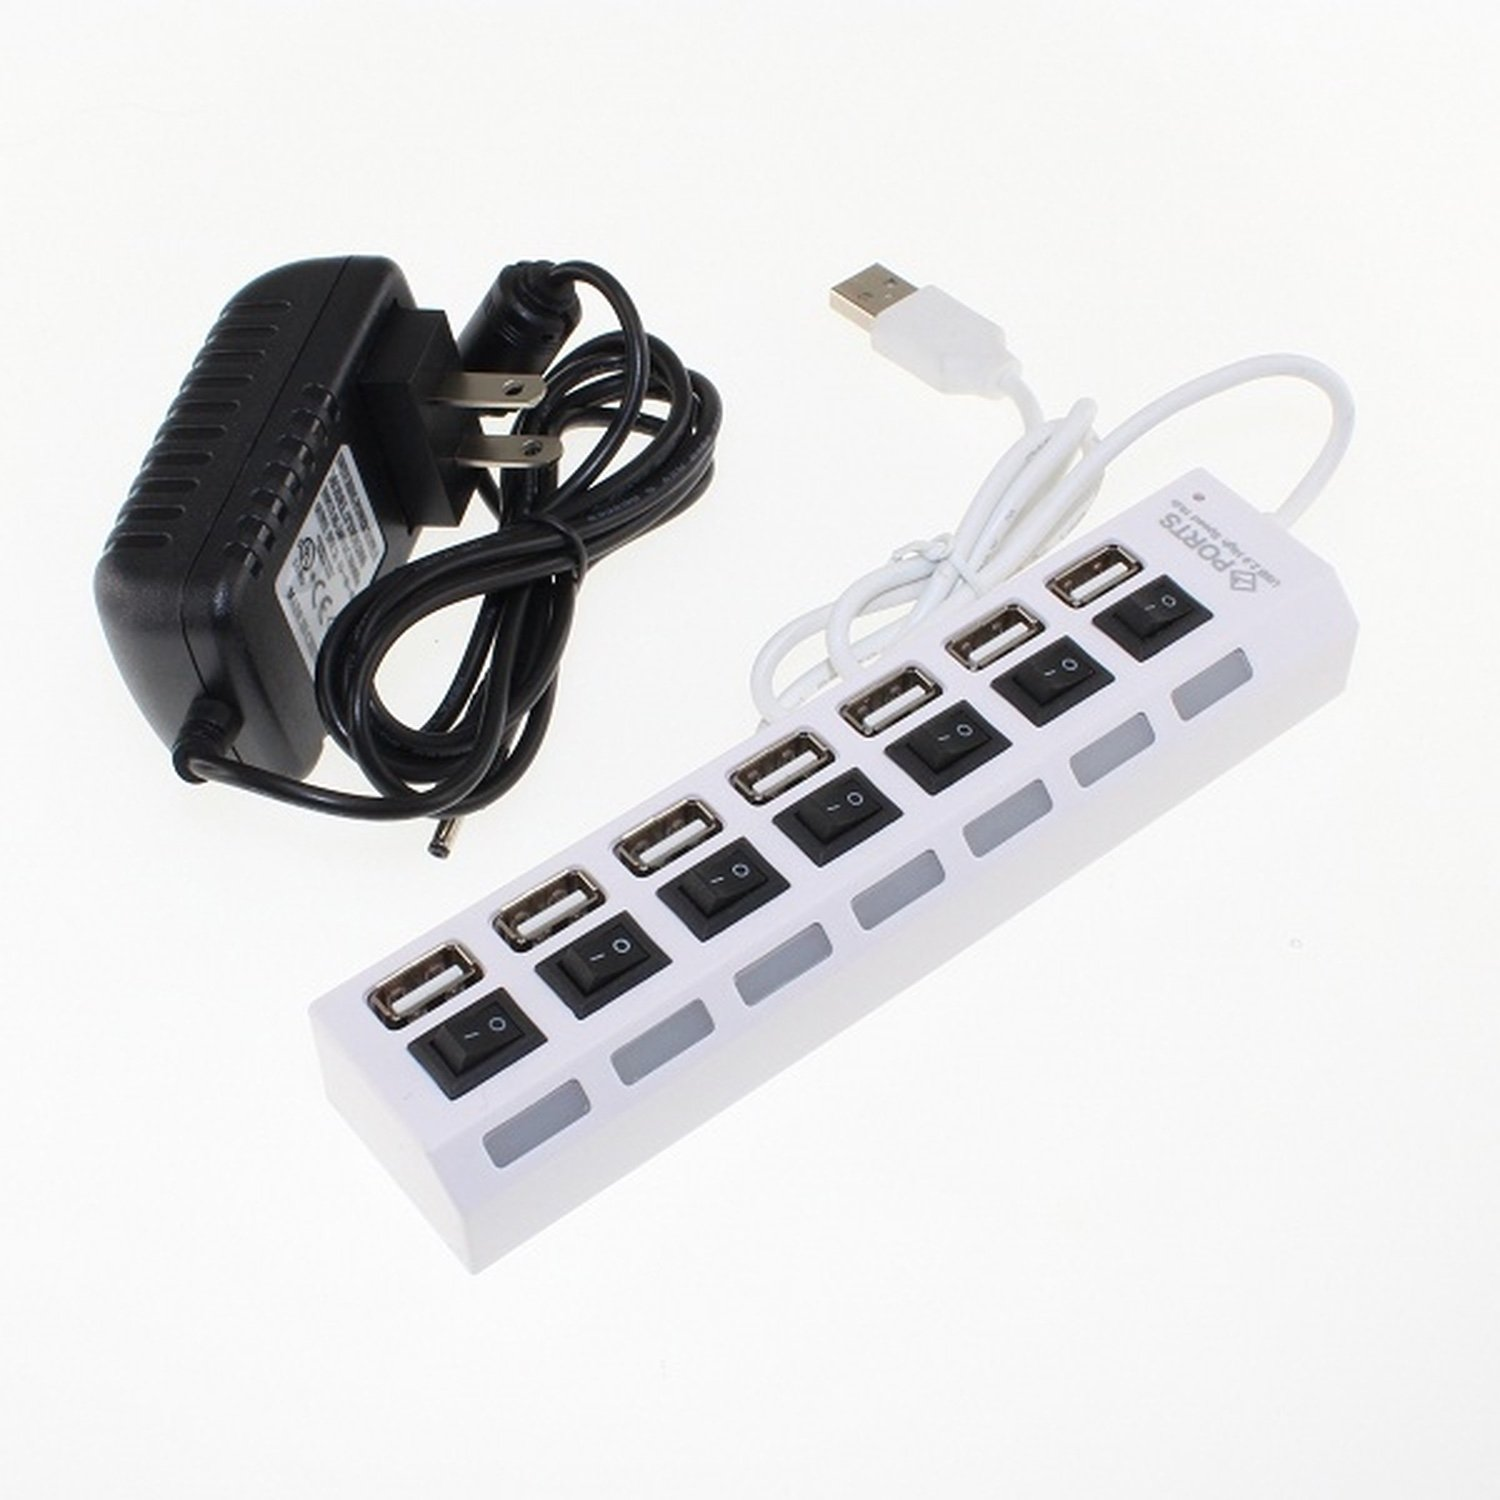 7 Port High Speed USB 2.0 Hub with Power Adapter And Dividual Power Switches, Blue LED Indicator